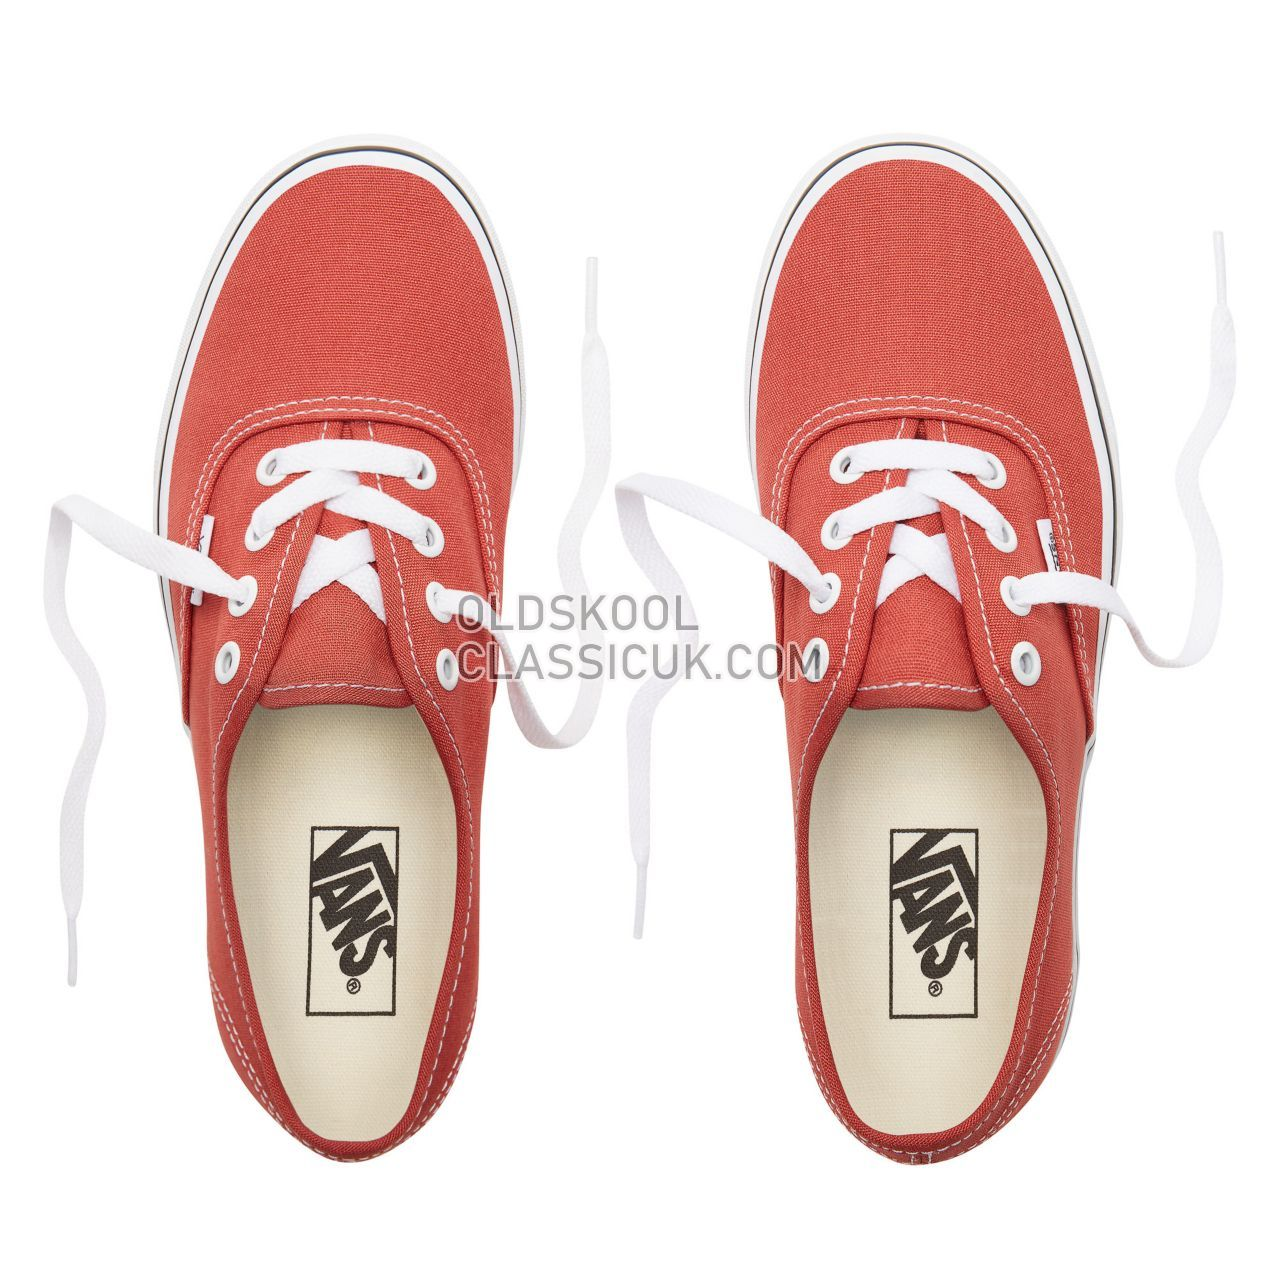 5c701f612416 ... Vans Authentic Sneakers Womens Hot Sauce True White VN0A38EMUKZ Shoes